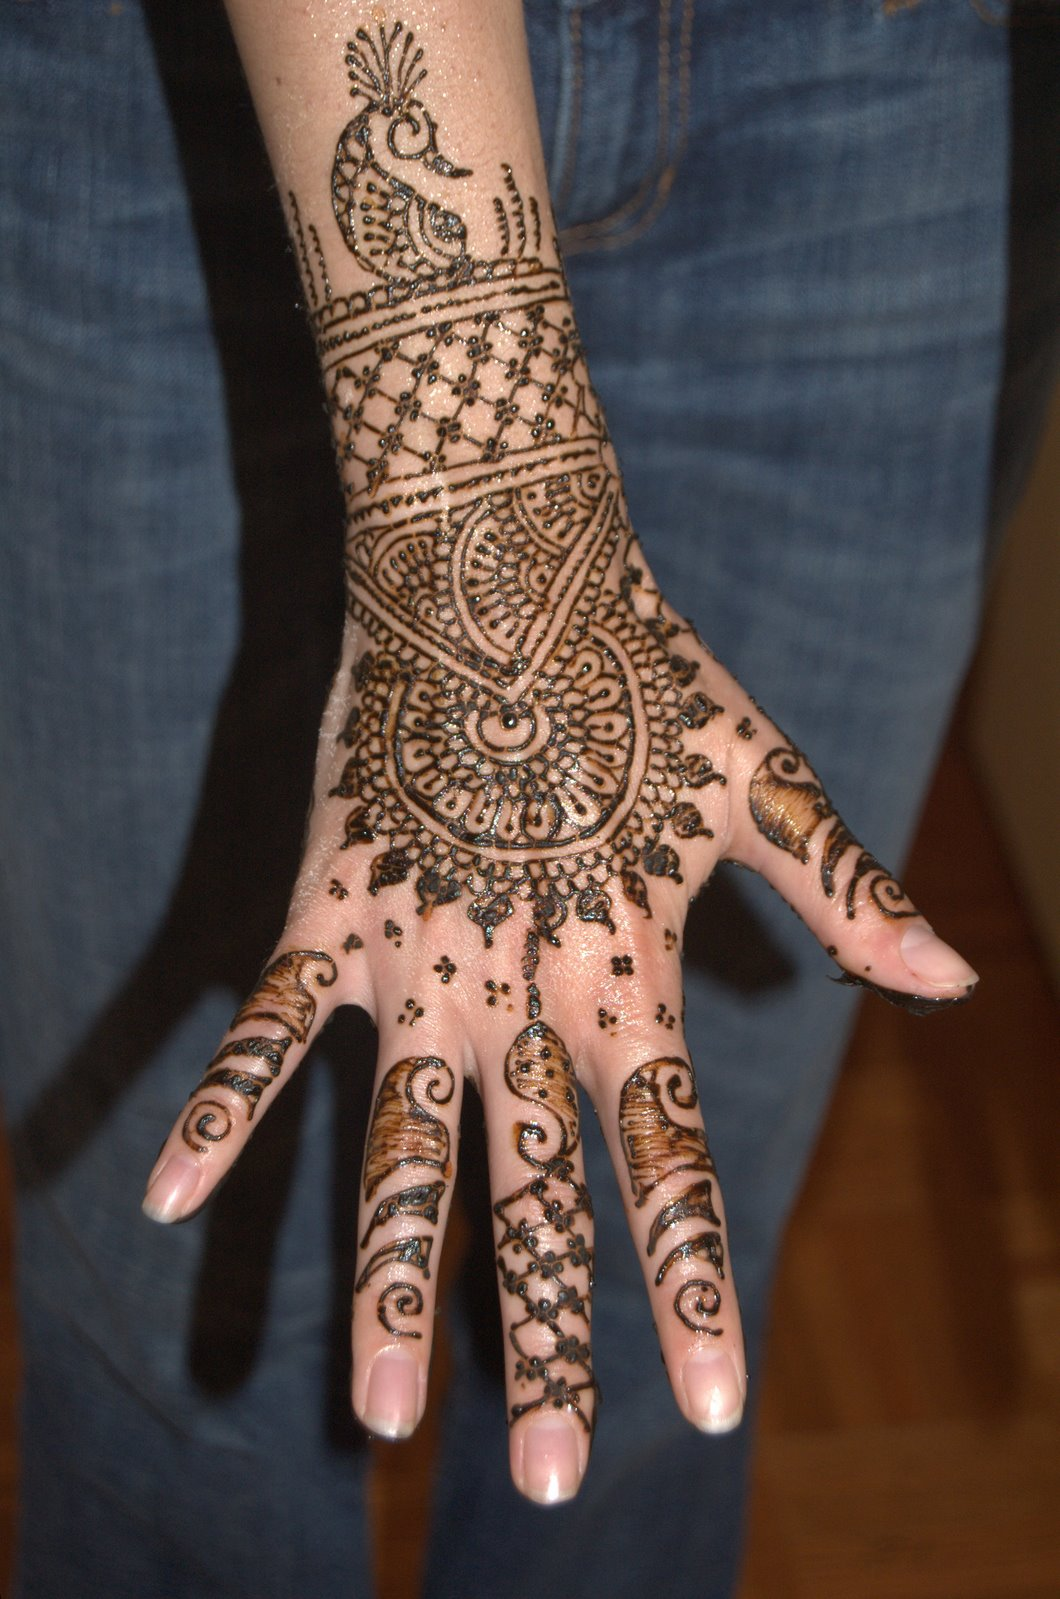 http://www.yusrablog.com/wp-content/uploads/2010/11/New-Henna-Mehndi-Design-for-Eid.jpg